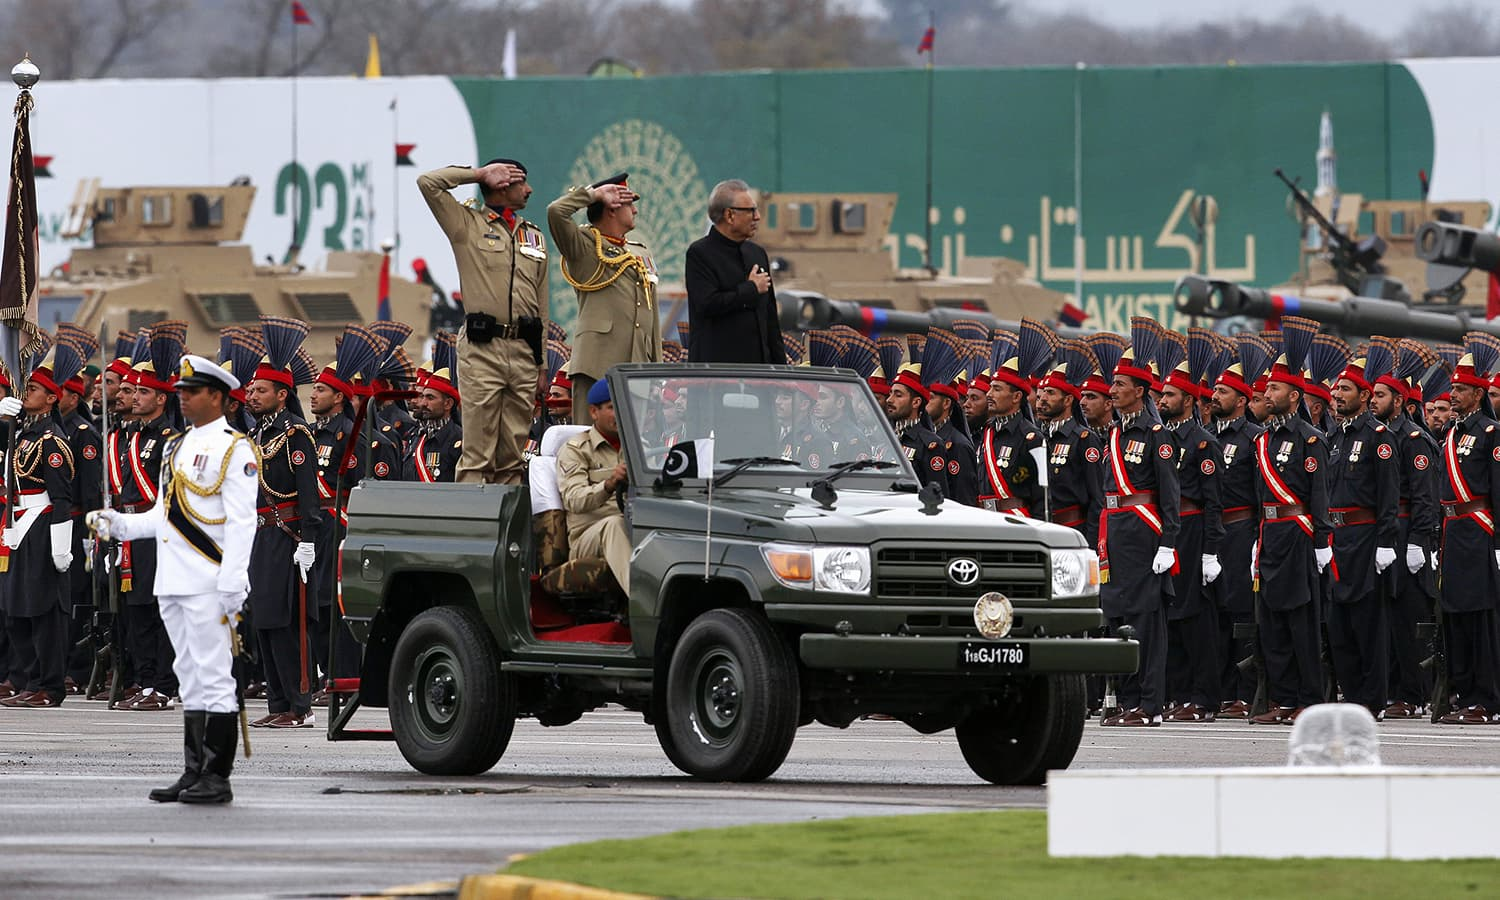 President Arif Alvi clad in a black sherwani stands atop a military vehicle to review the military parade. ─ AP